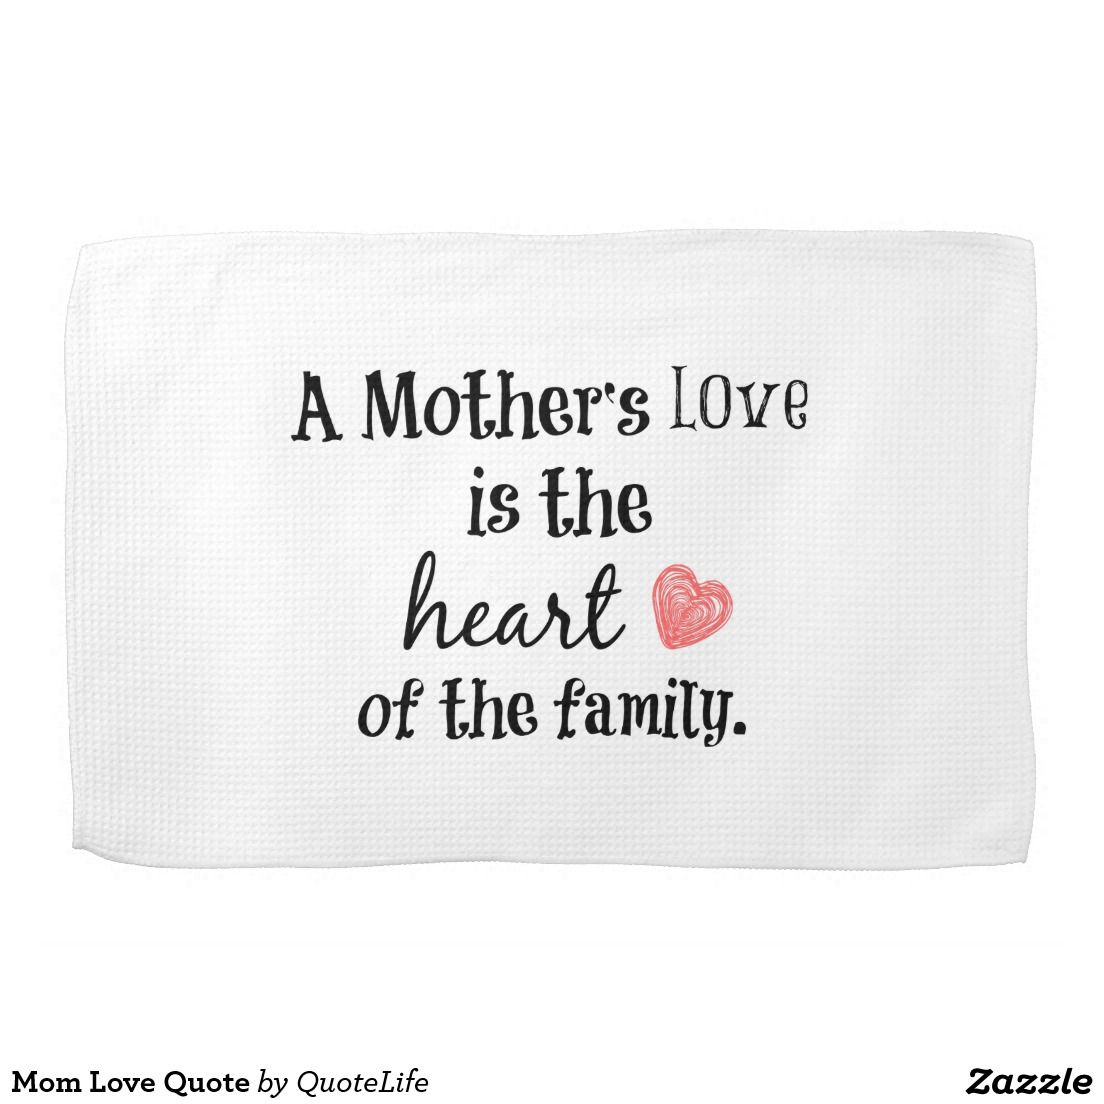 Mom love quote hand towel embroidery designs u inspo pinterest